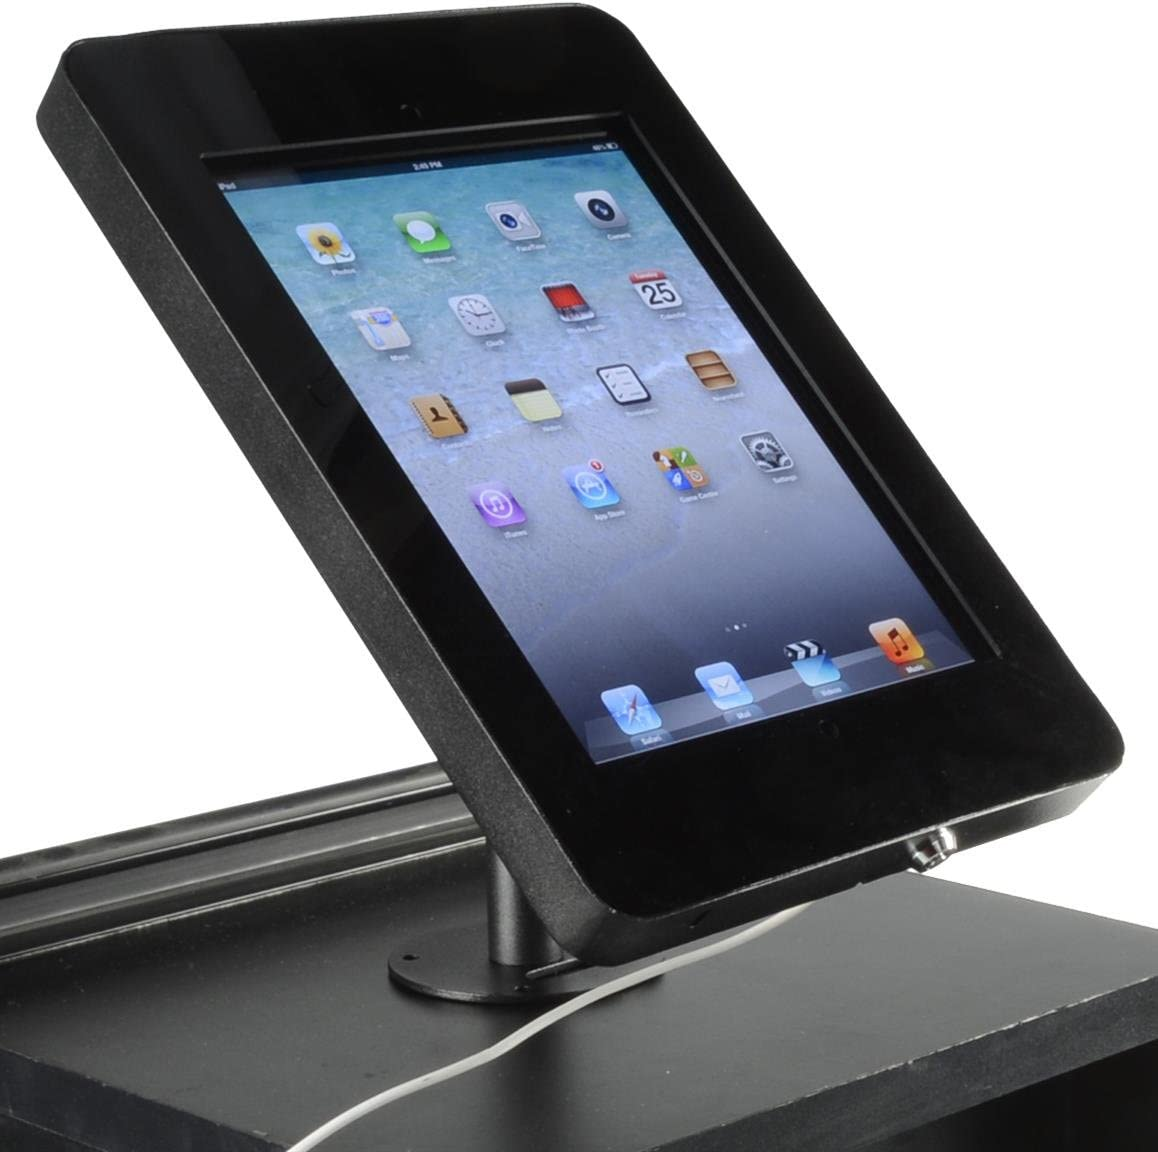 Enclosure for iPad, Hidden Home Button, 360-degree Rotation, Tablet Stand Bolts to Table (Black Steel)